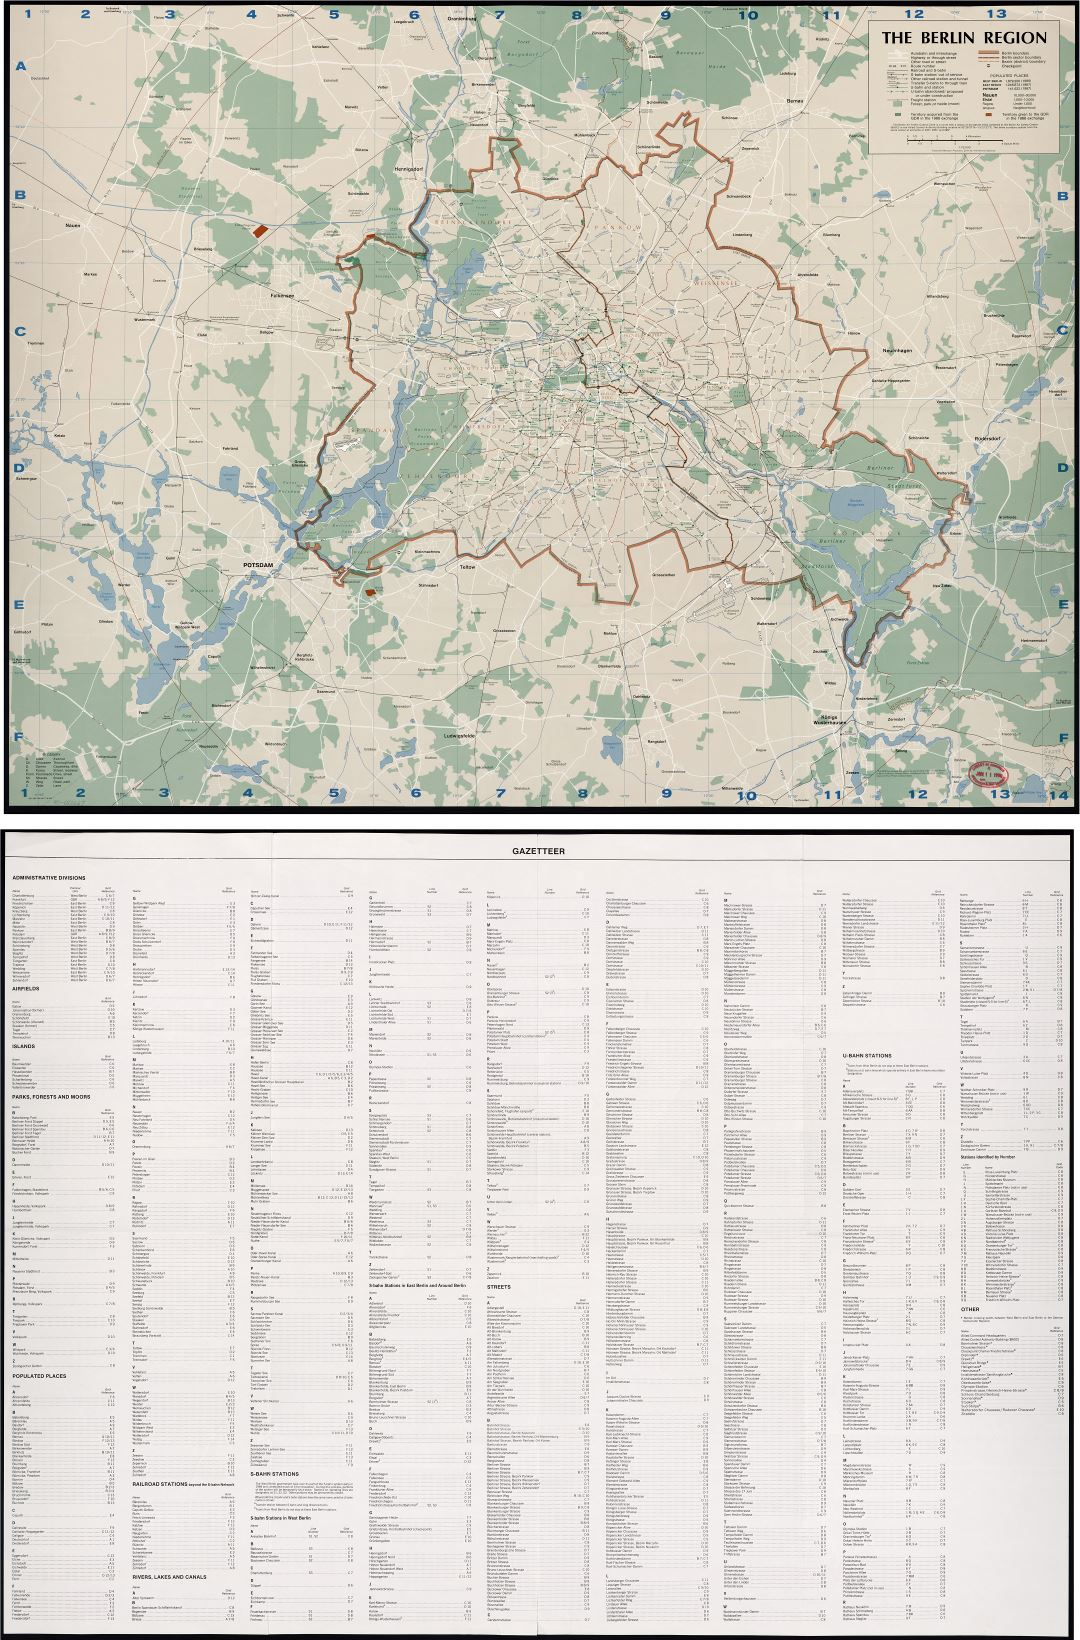 Large scale detail map of the Berlin region - 1989